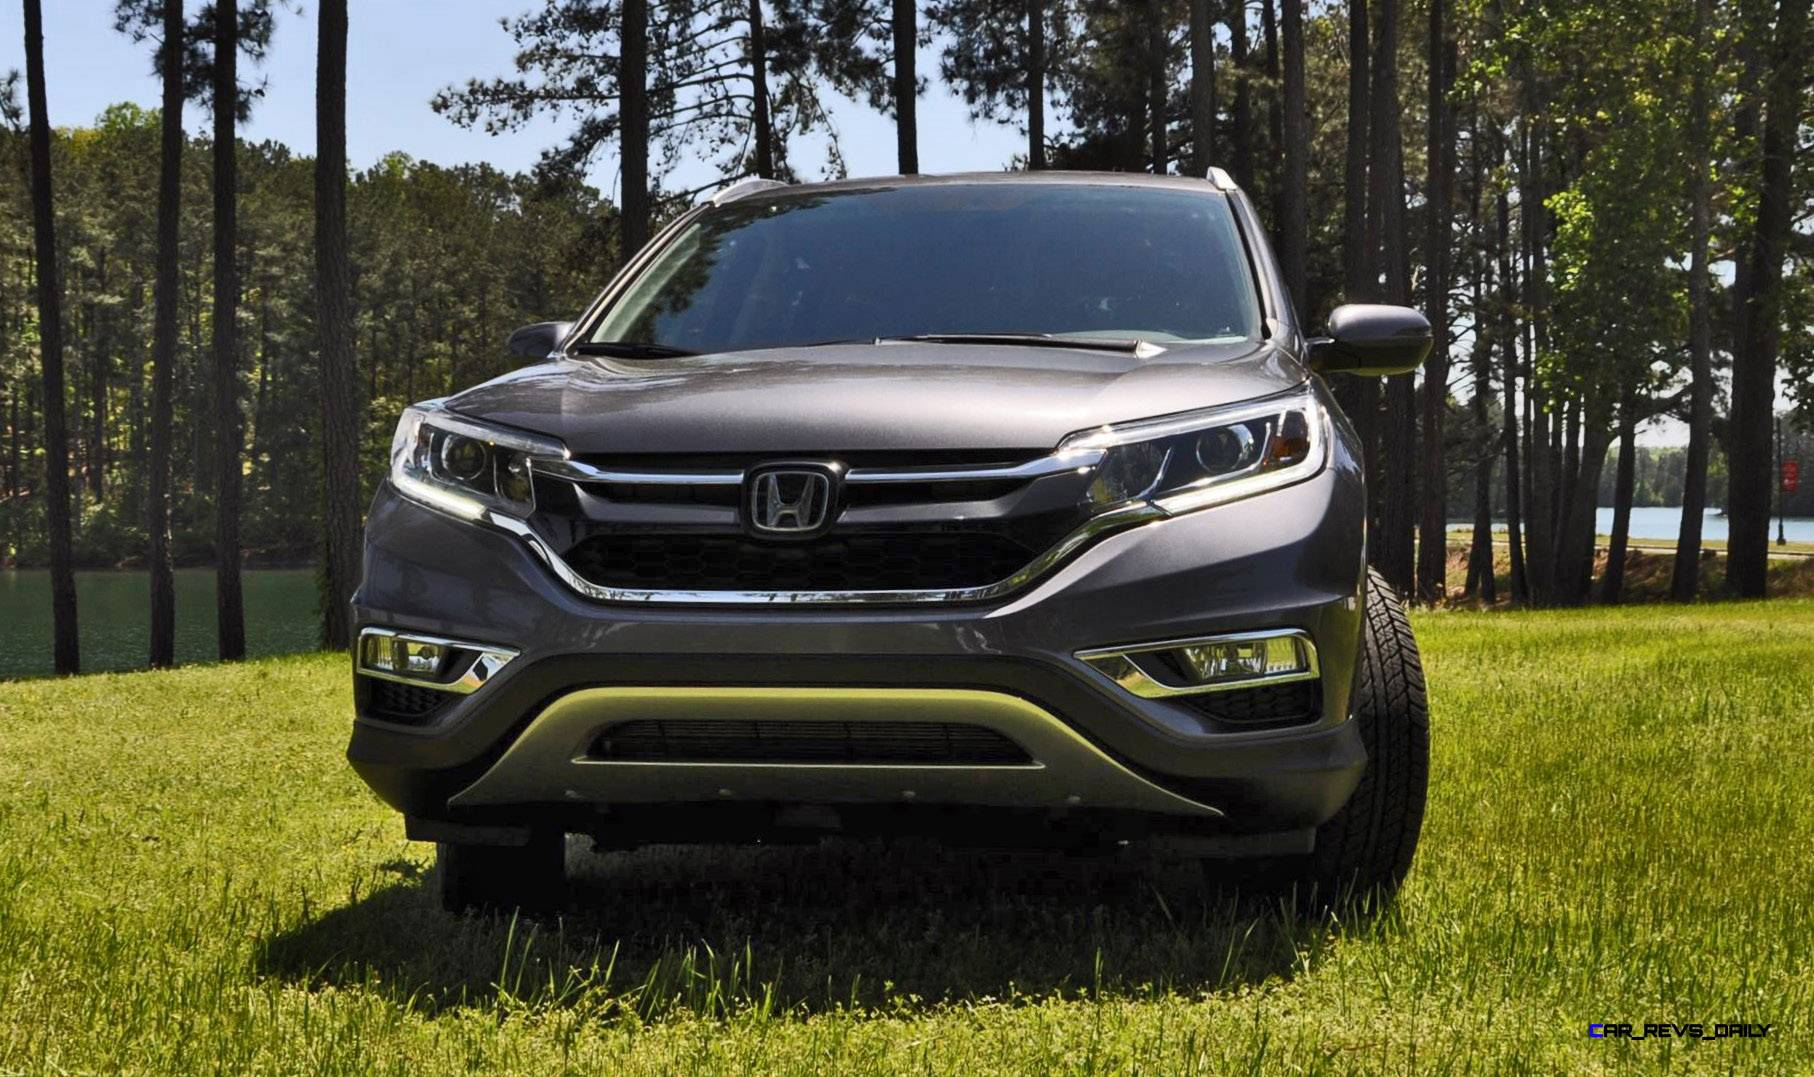 2015 honda cr v touring awd review 52 car revs. Black Bedroom Furniture Sets. Home Design Ideas